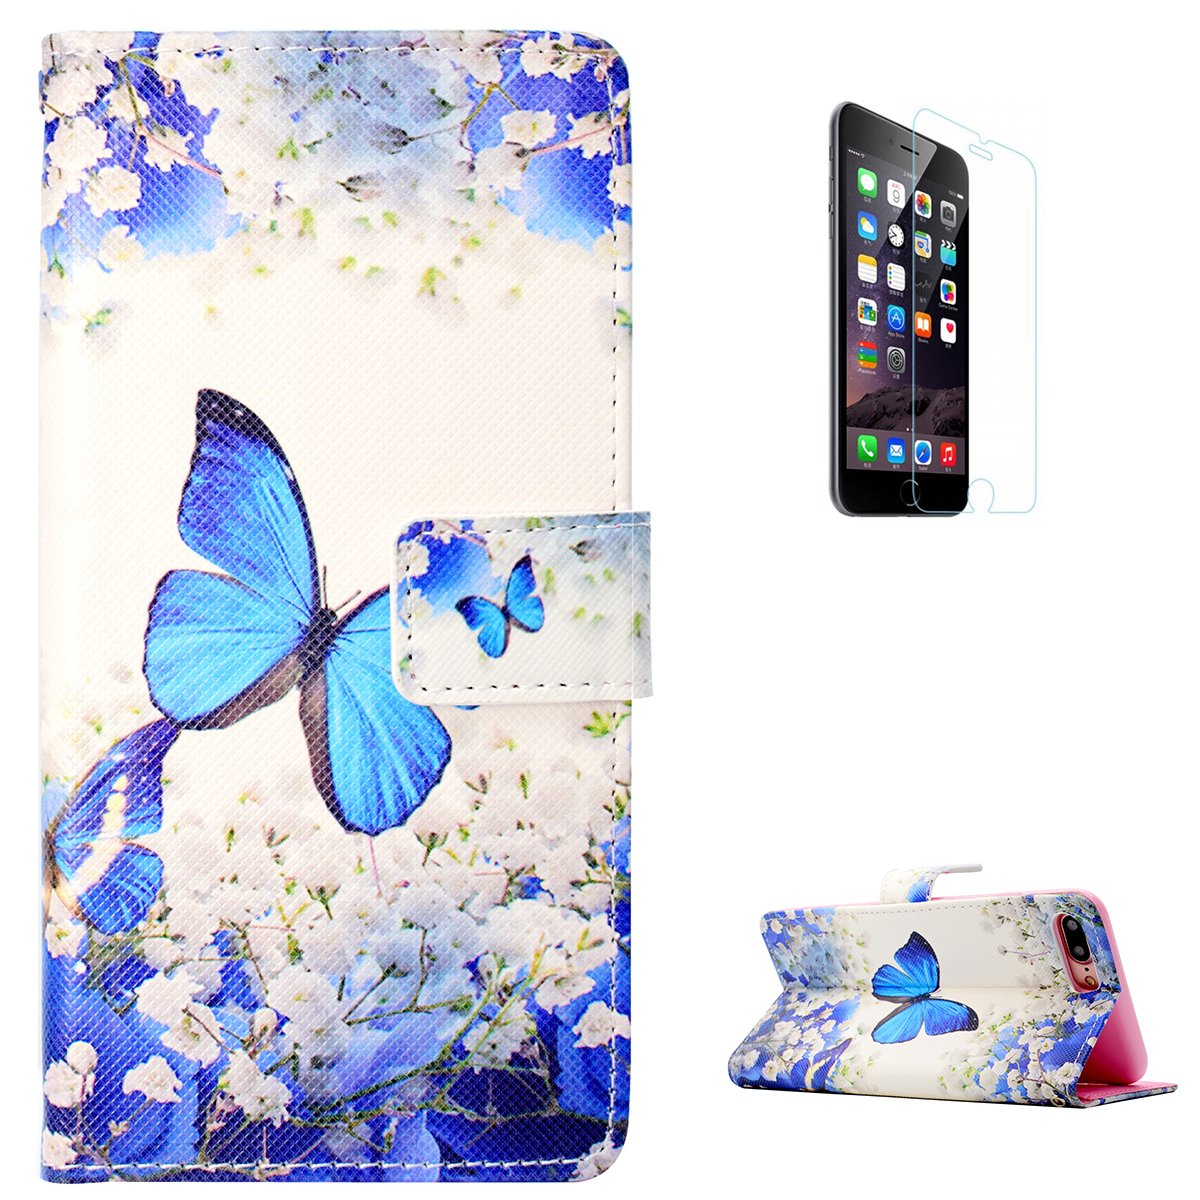 KaseHom iPhone 7 Plus/8 Plus Case + [Free screen Protector], Premium Slim Leather Shell Cute Cartoon Butterfly Design with Card Slot Kickstand Magnetic Flip Durable Wallet Cover for 7 Plus/8 Plus CaseHome CHIP7P-213221